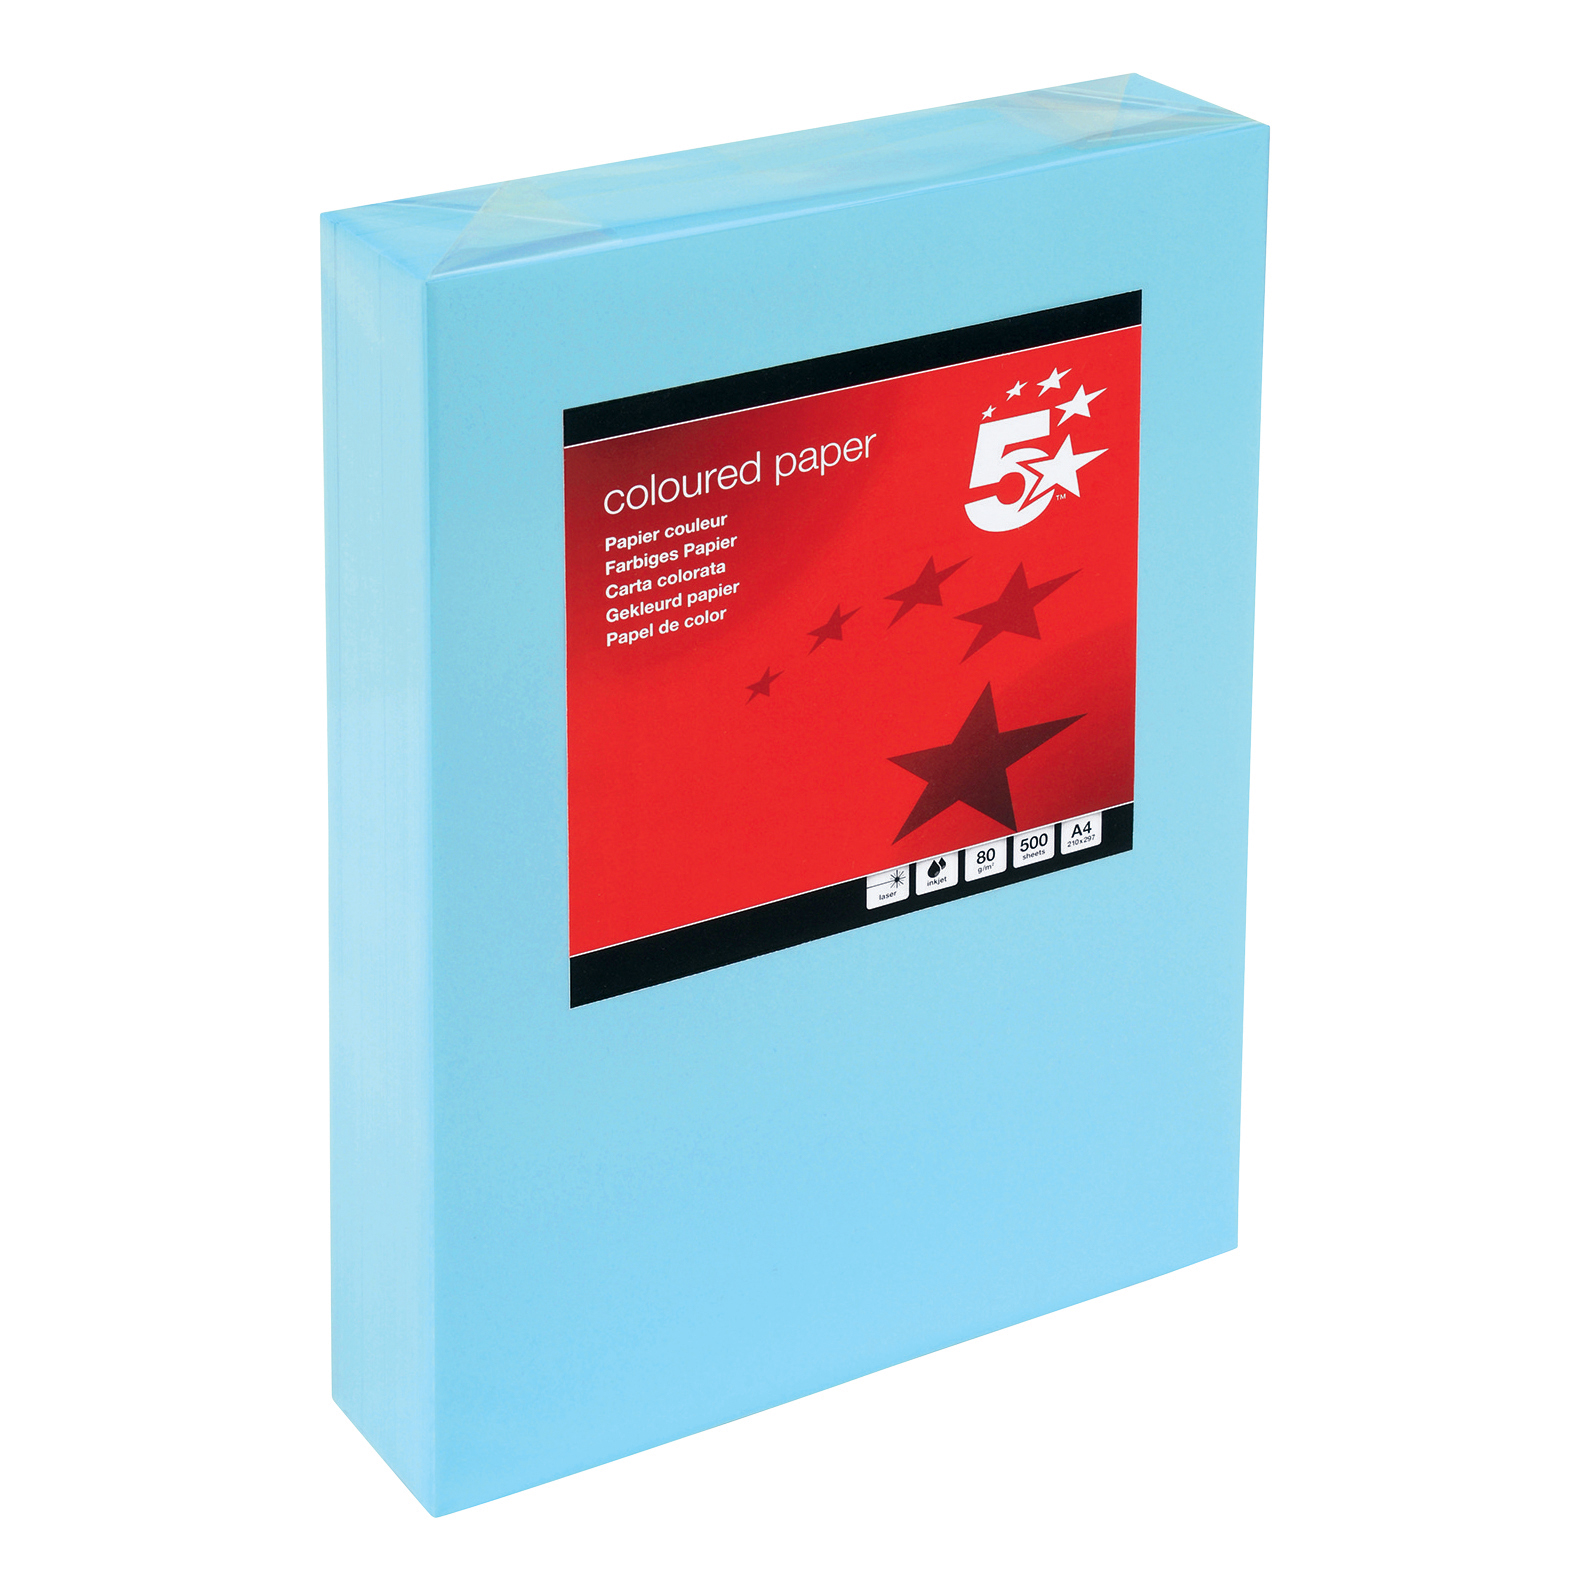 A4 5 Star Office Coloured Copier Paper Multifunctional Ream-Wrapped 80gsm A4 Medium Blue 500 Sheets